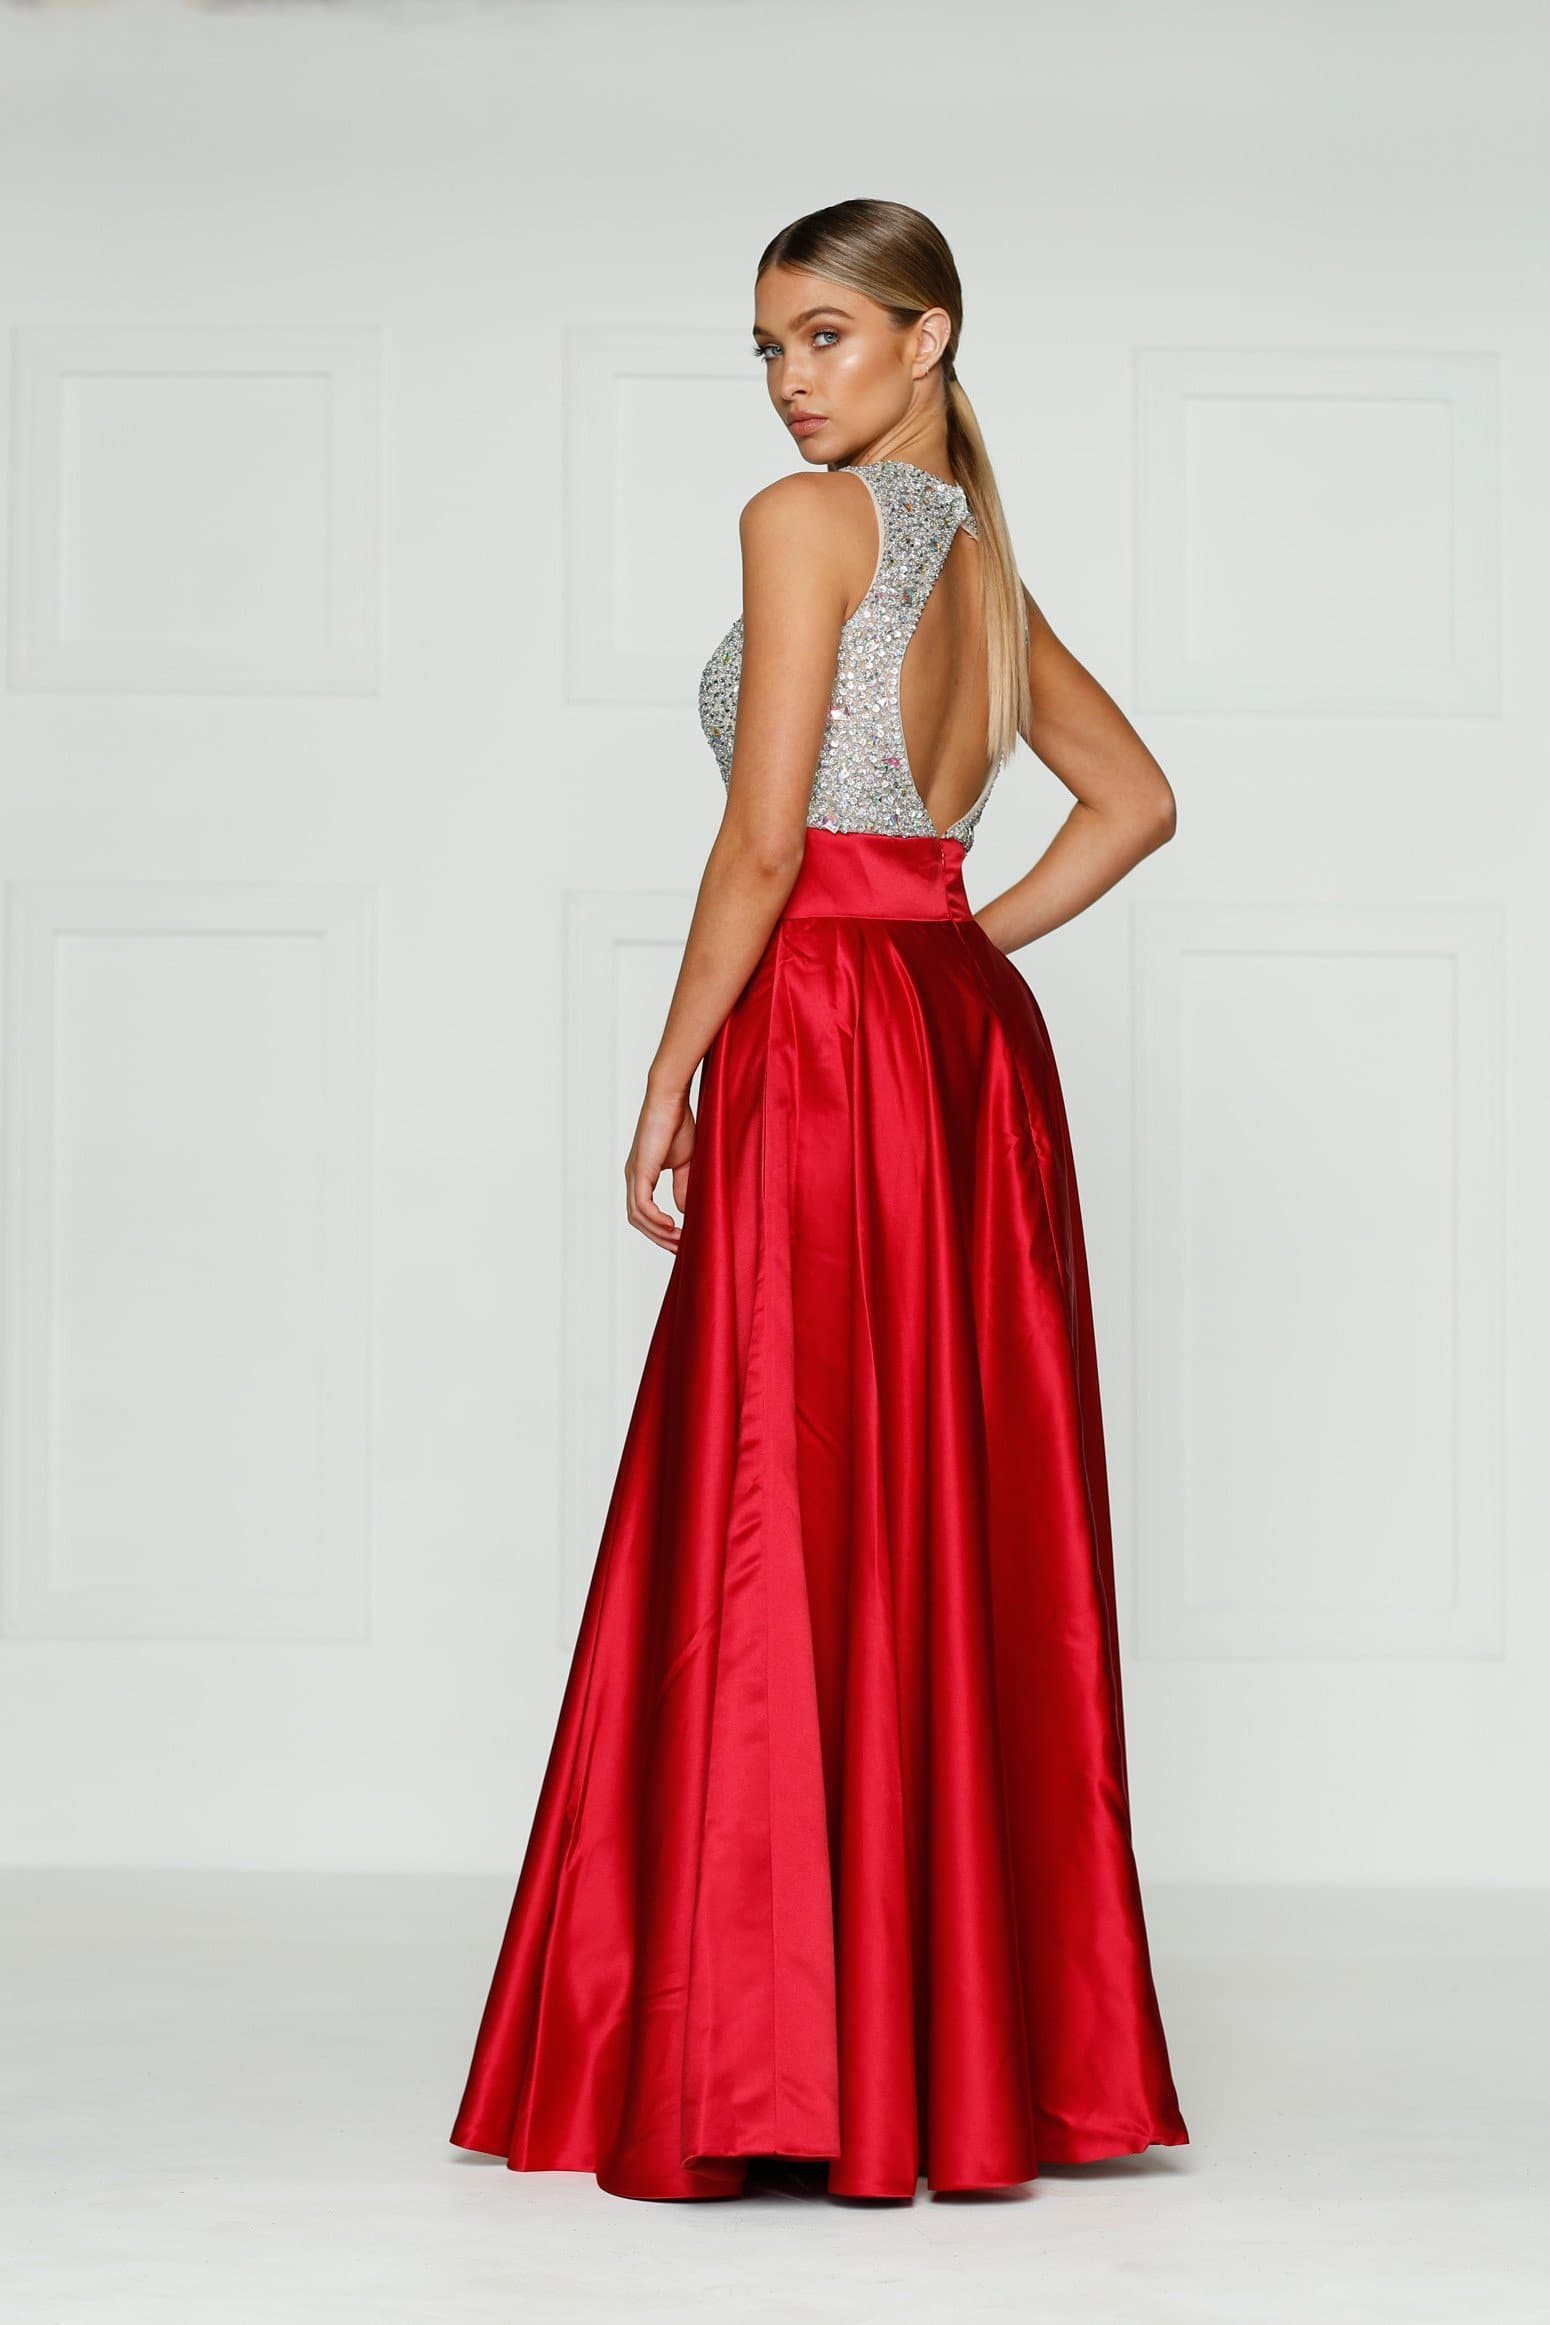 A&N Susu - Red Rhinestones Gown with High Neck and  Back Detail